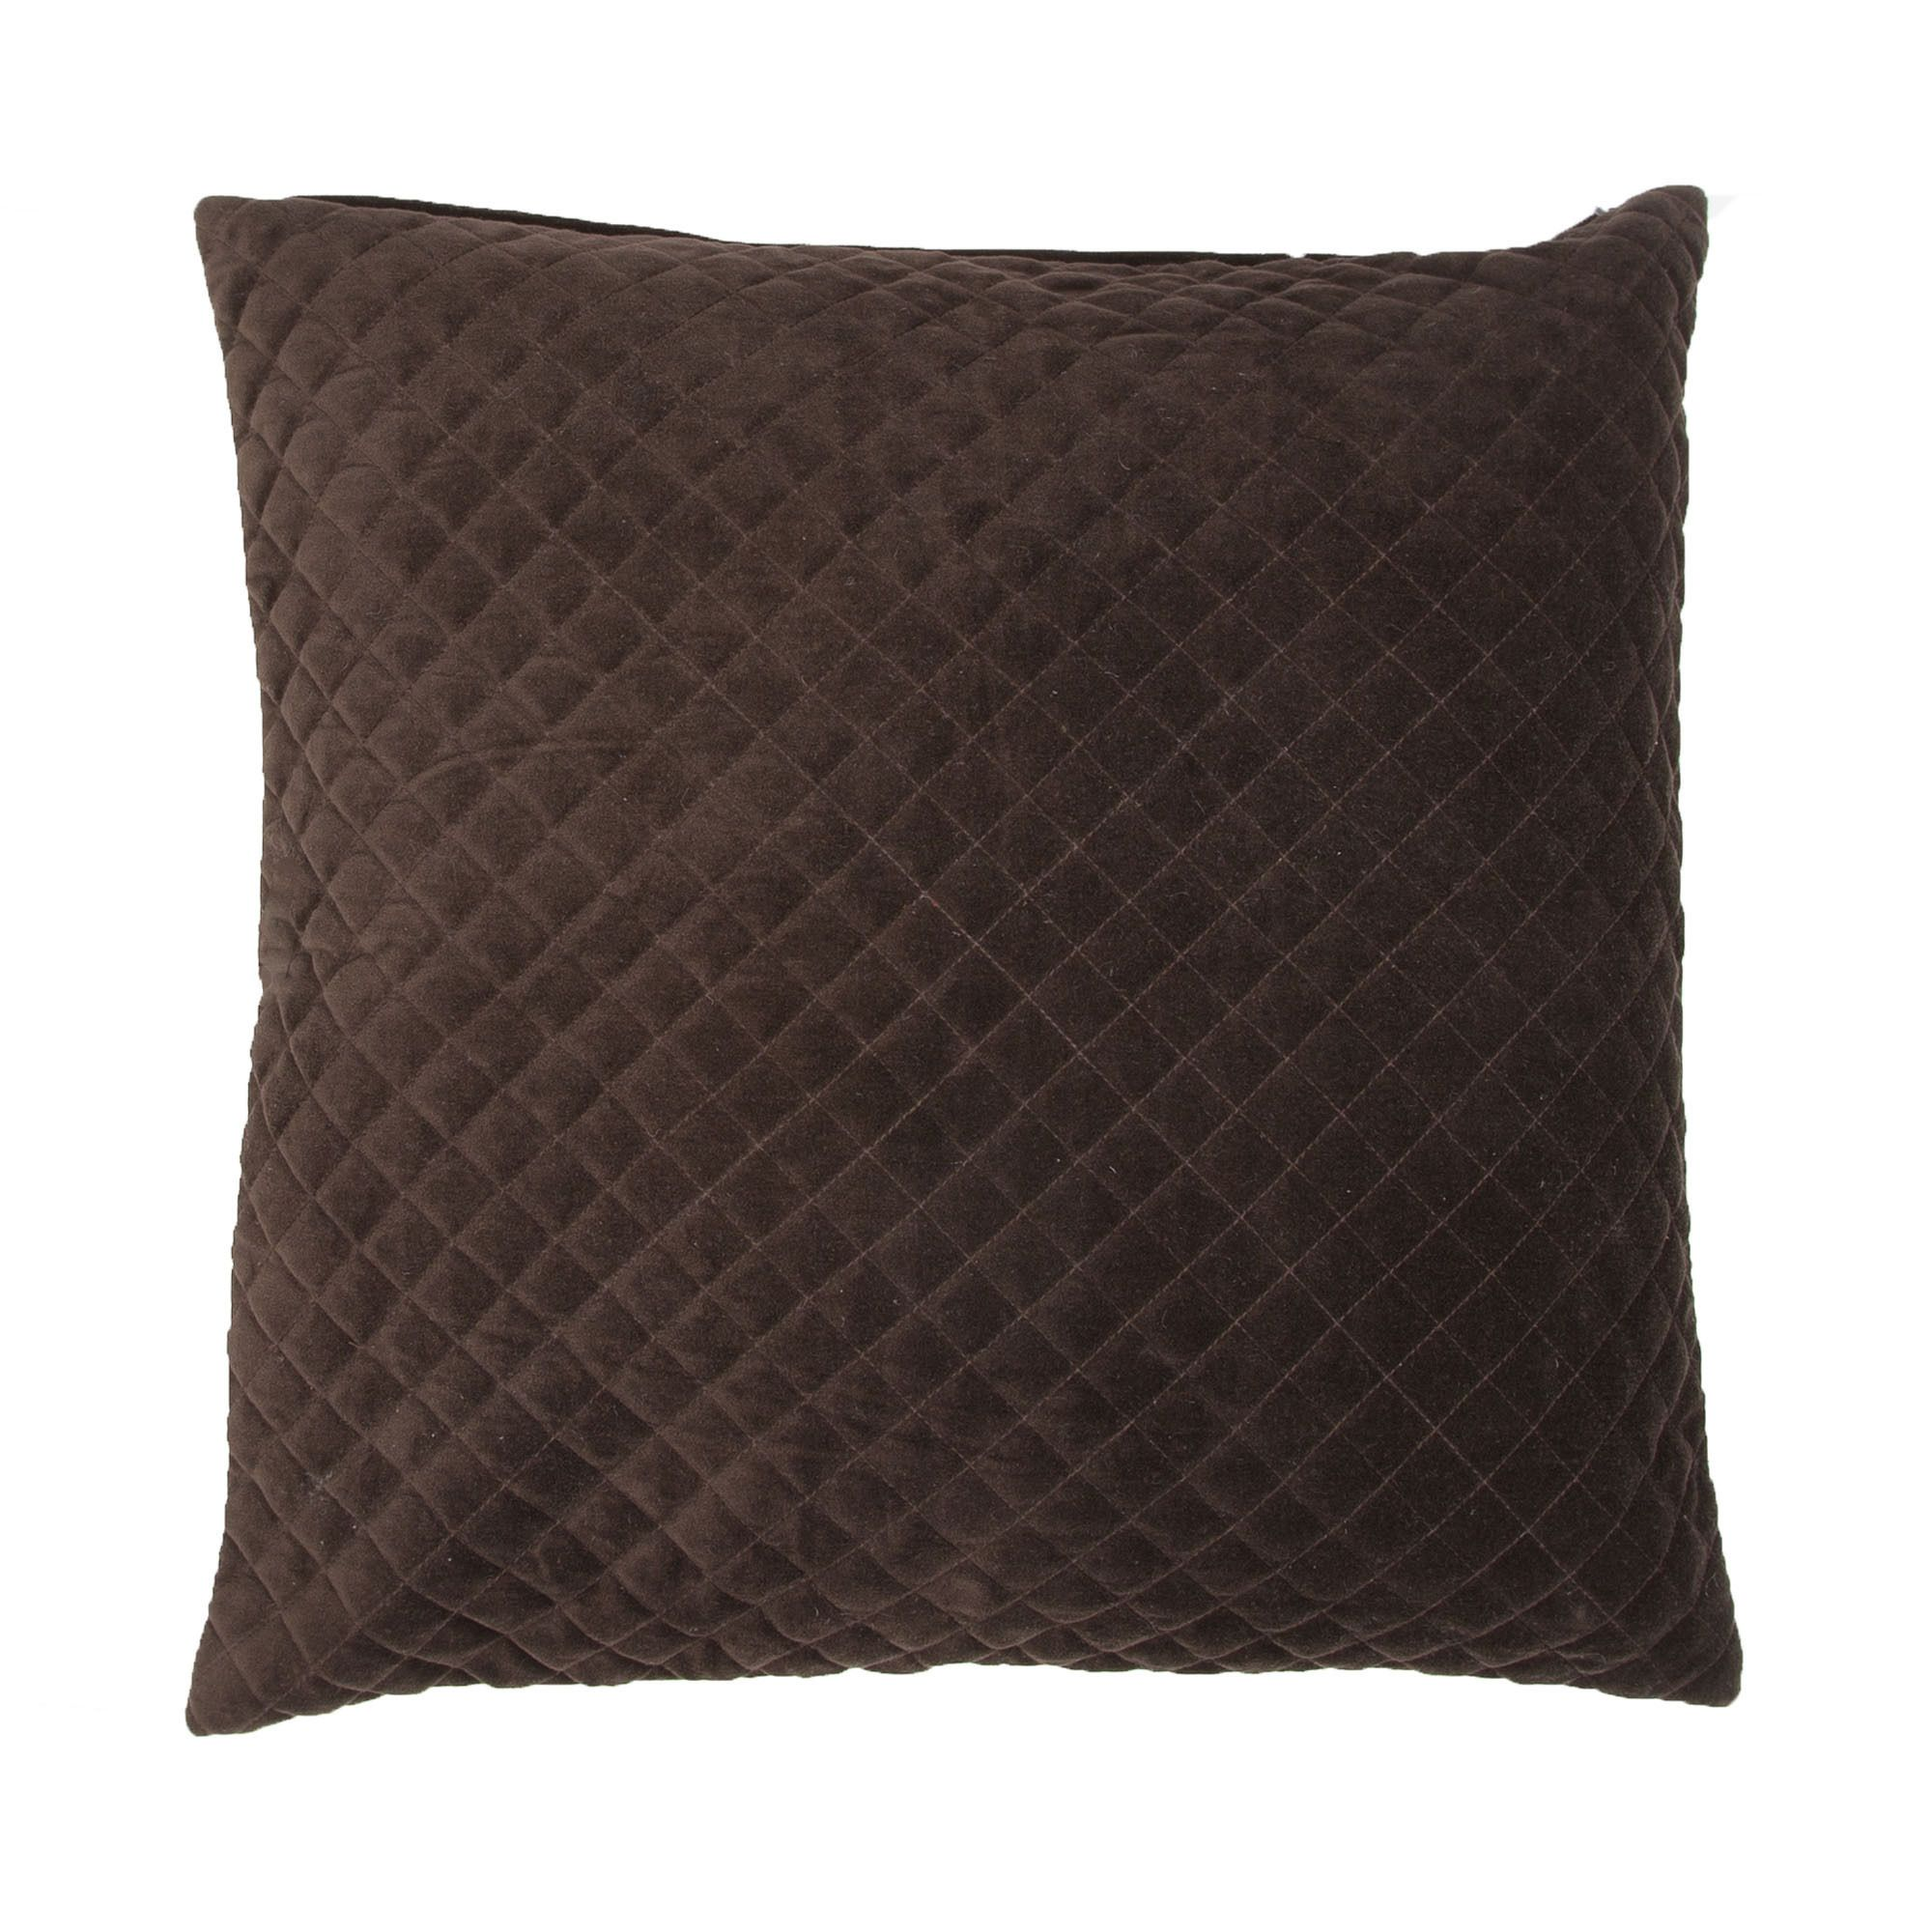 Jaipur Handmade Solid Pattern 22-inch Pillow